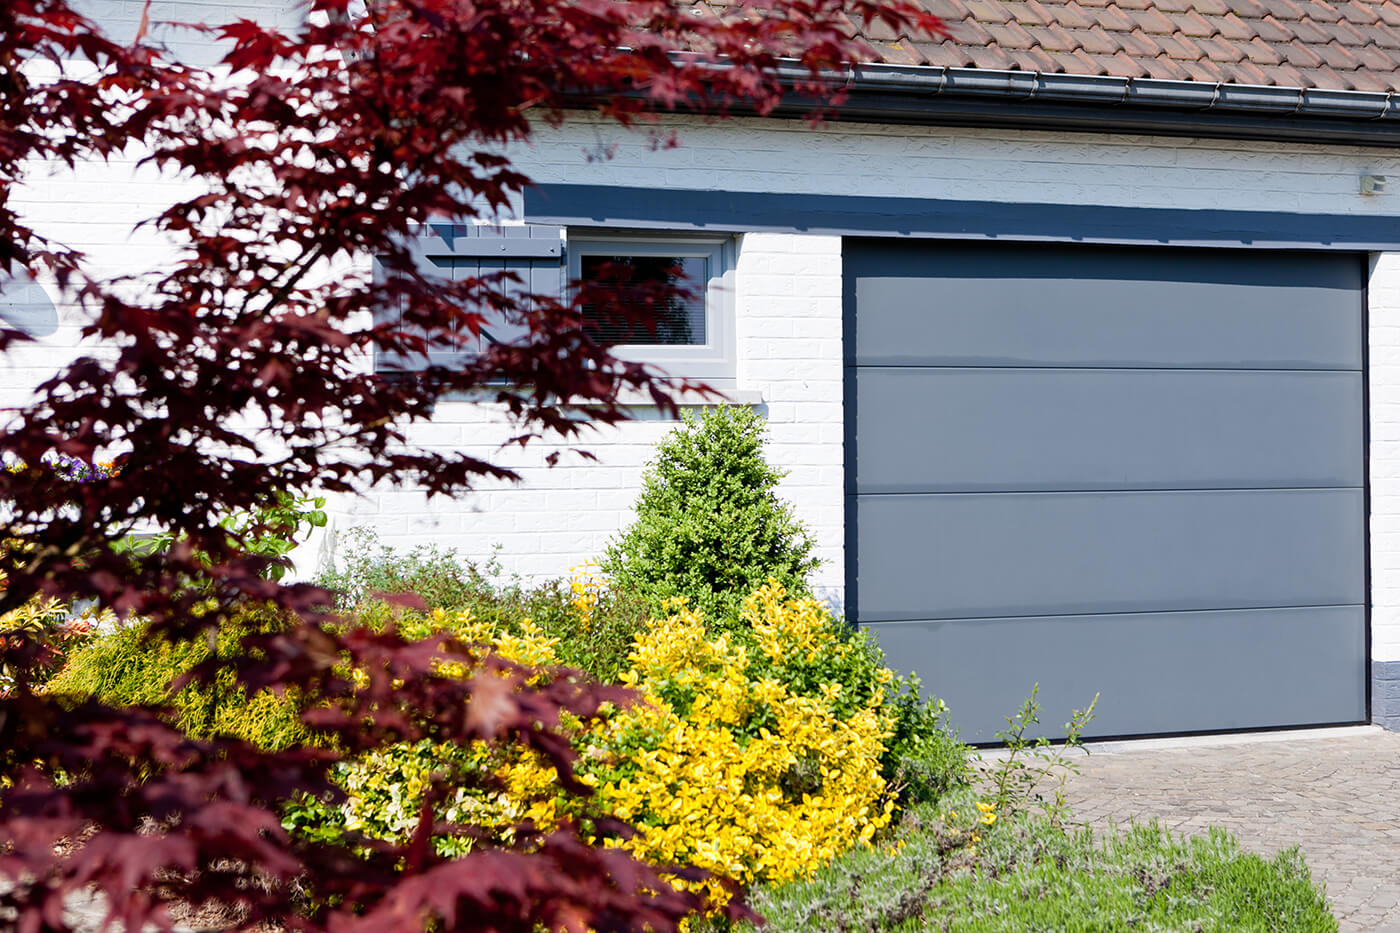 Made-to-measure sectional garage door - Raposo Charleroi, Image n°1